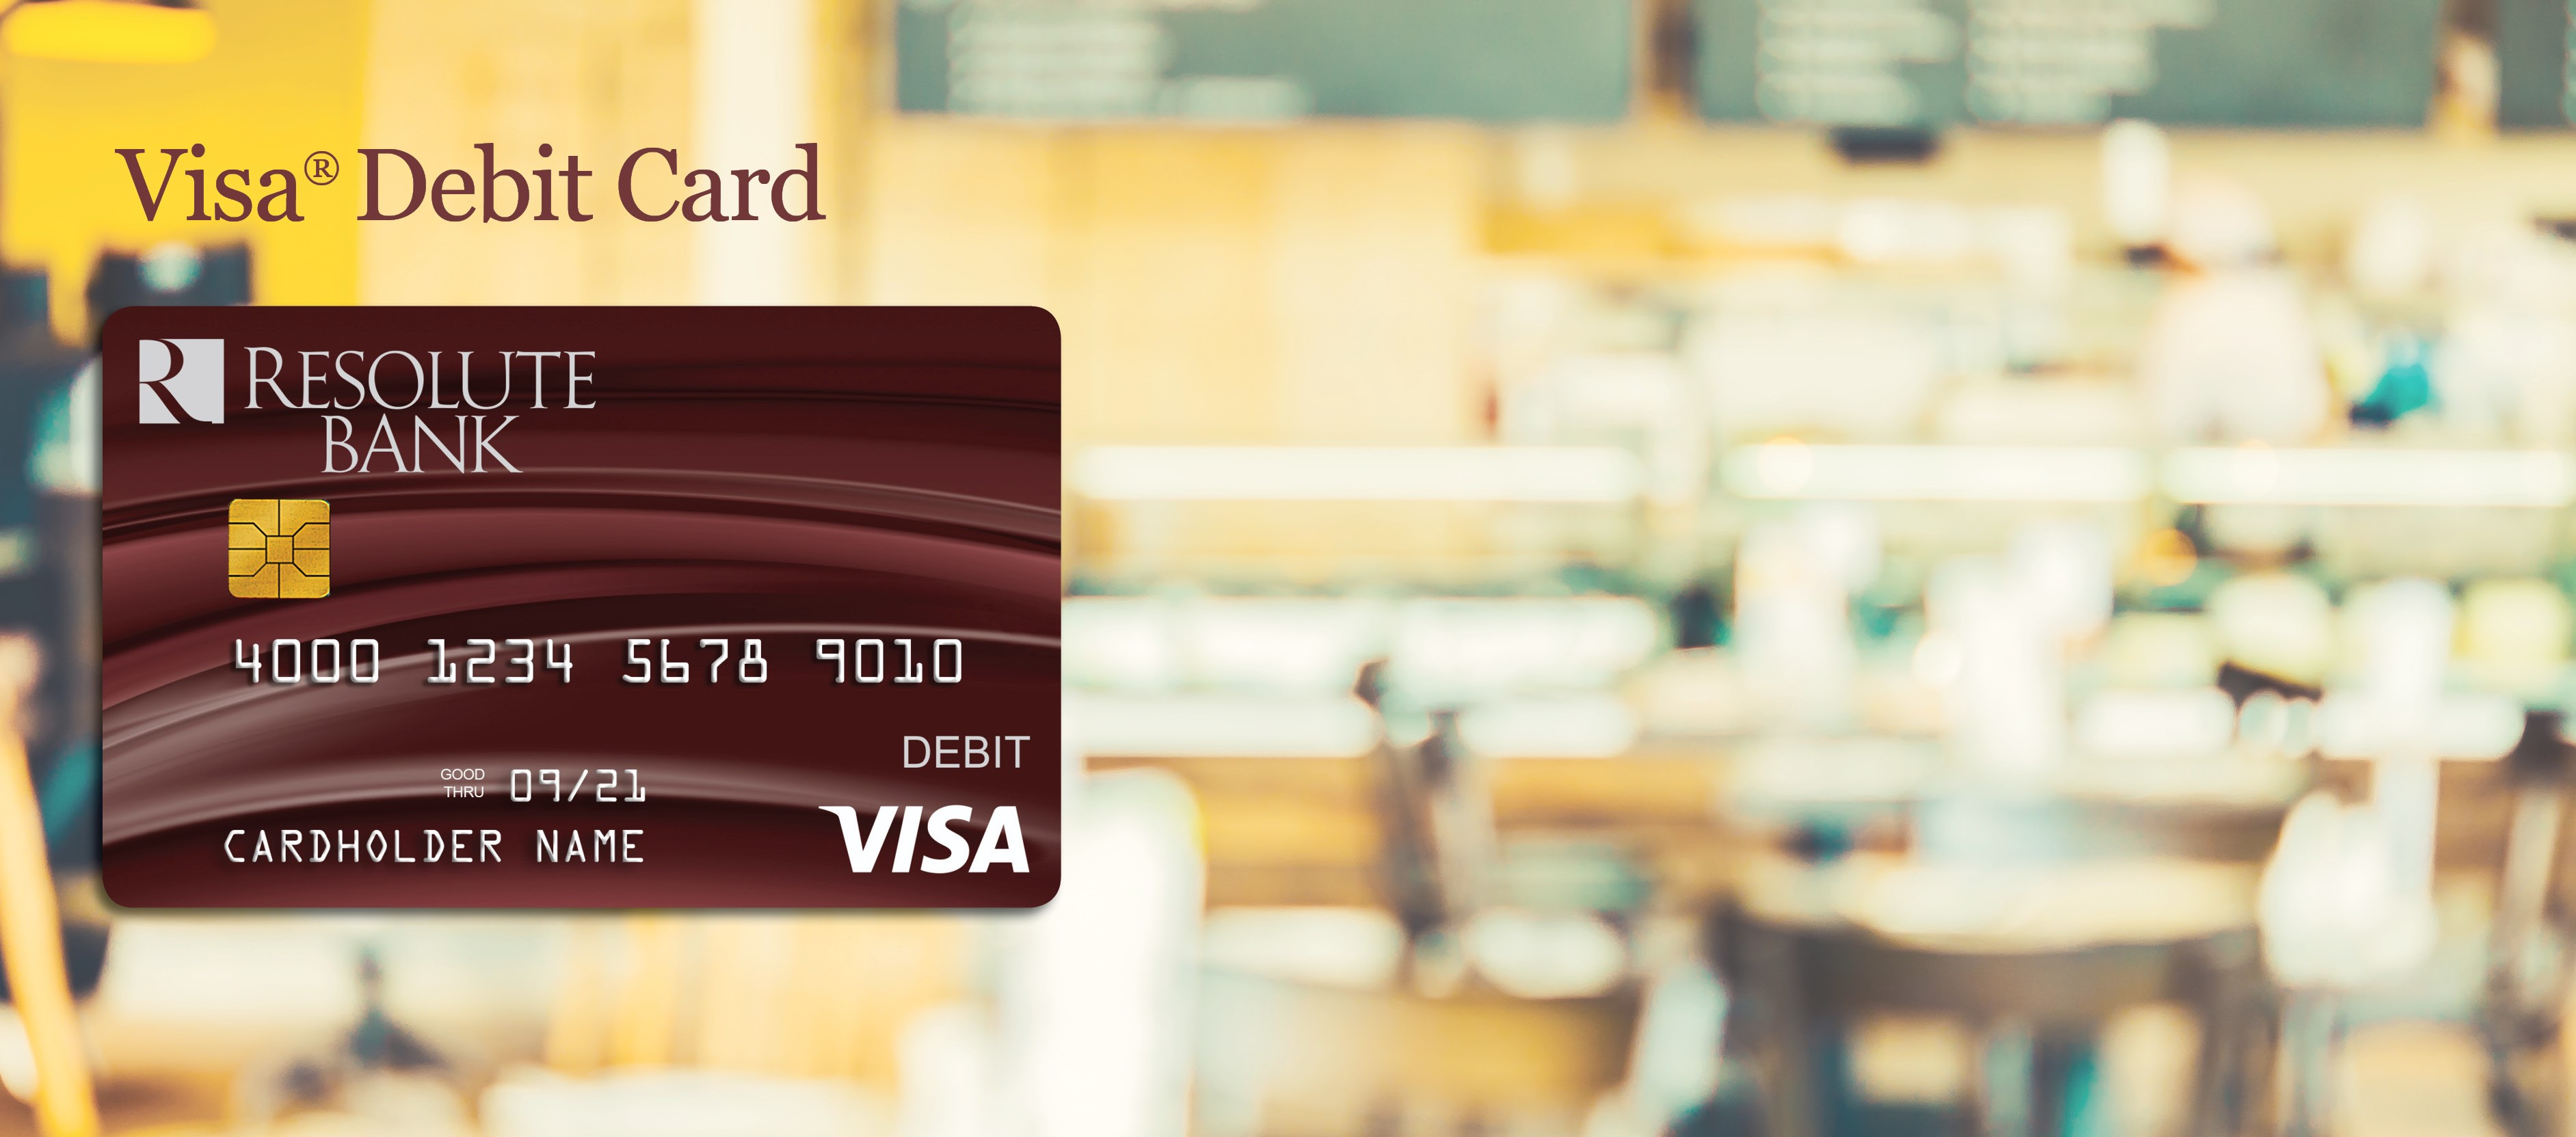 visa-debit-card-06-2017